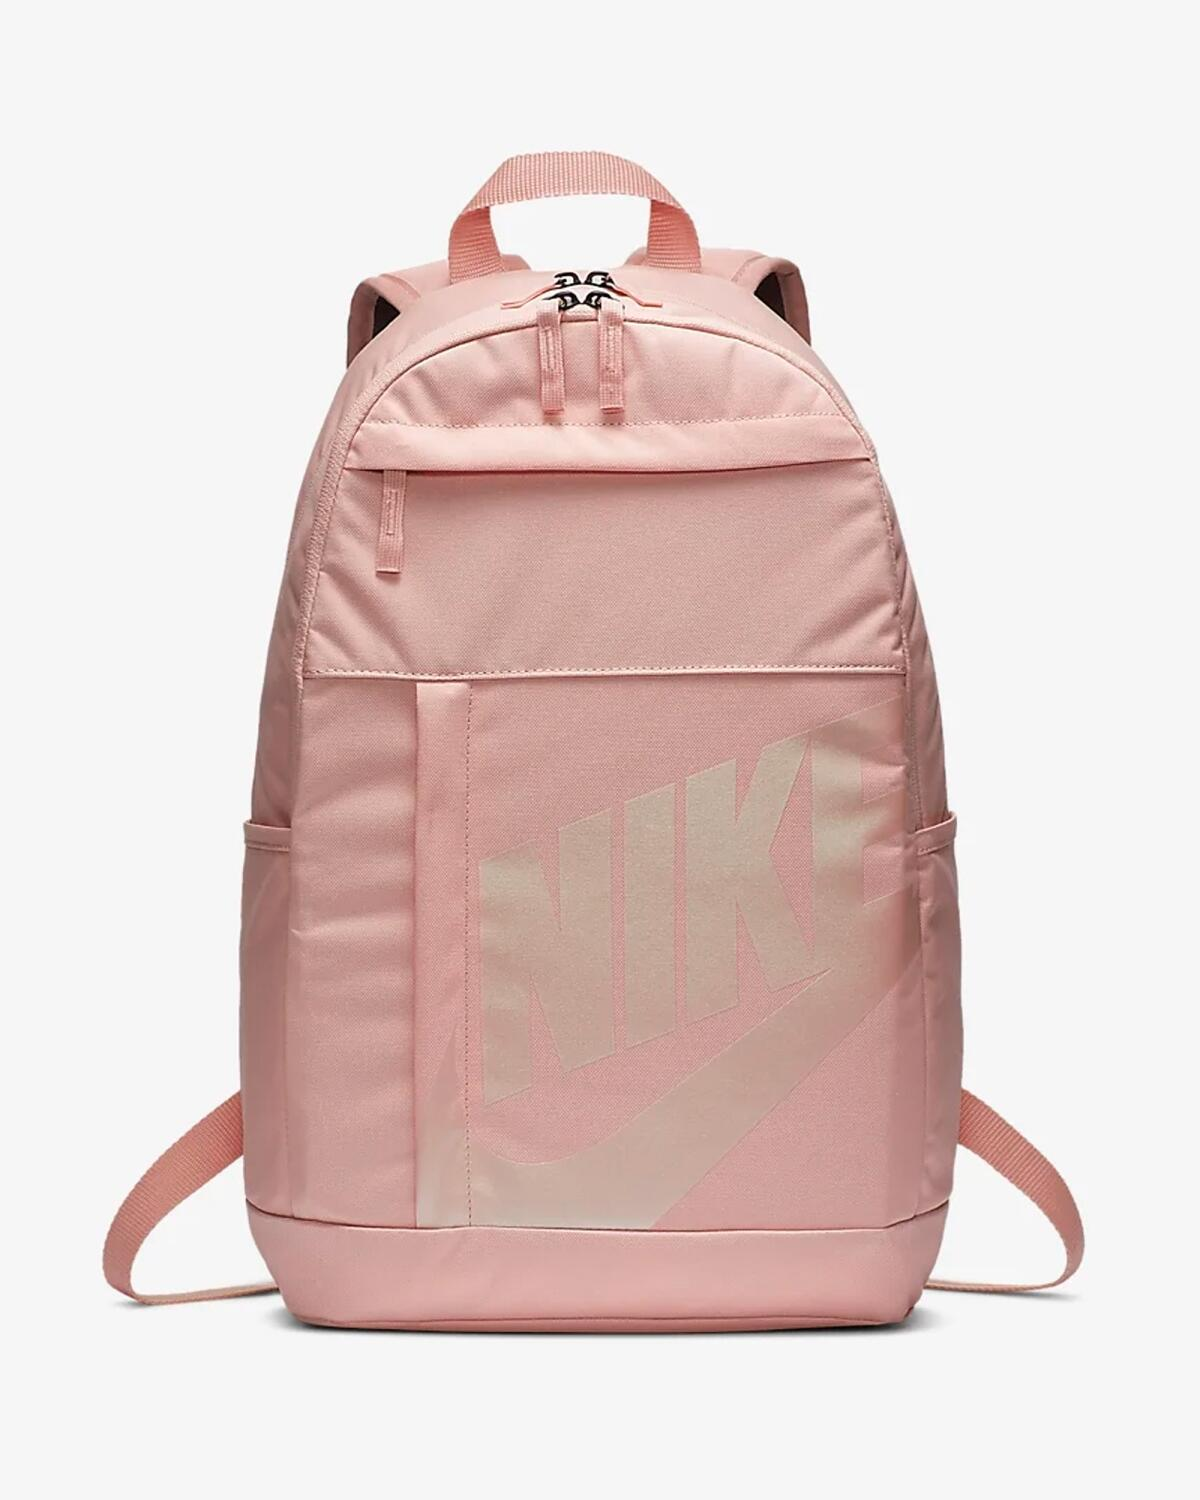 nike-elemental-2-0-rucksack-farbe-648-coral-stardust-coral-stardust-clear-